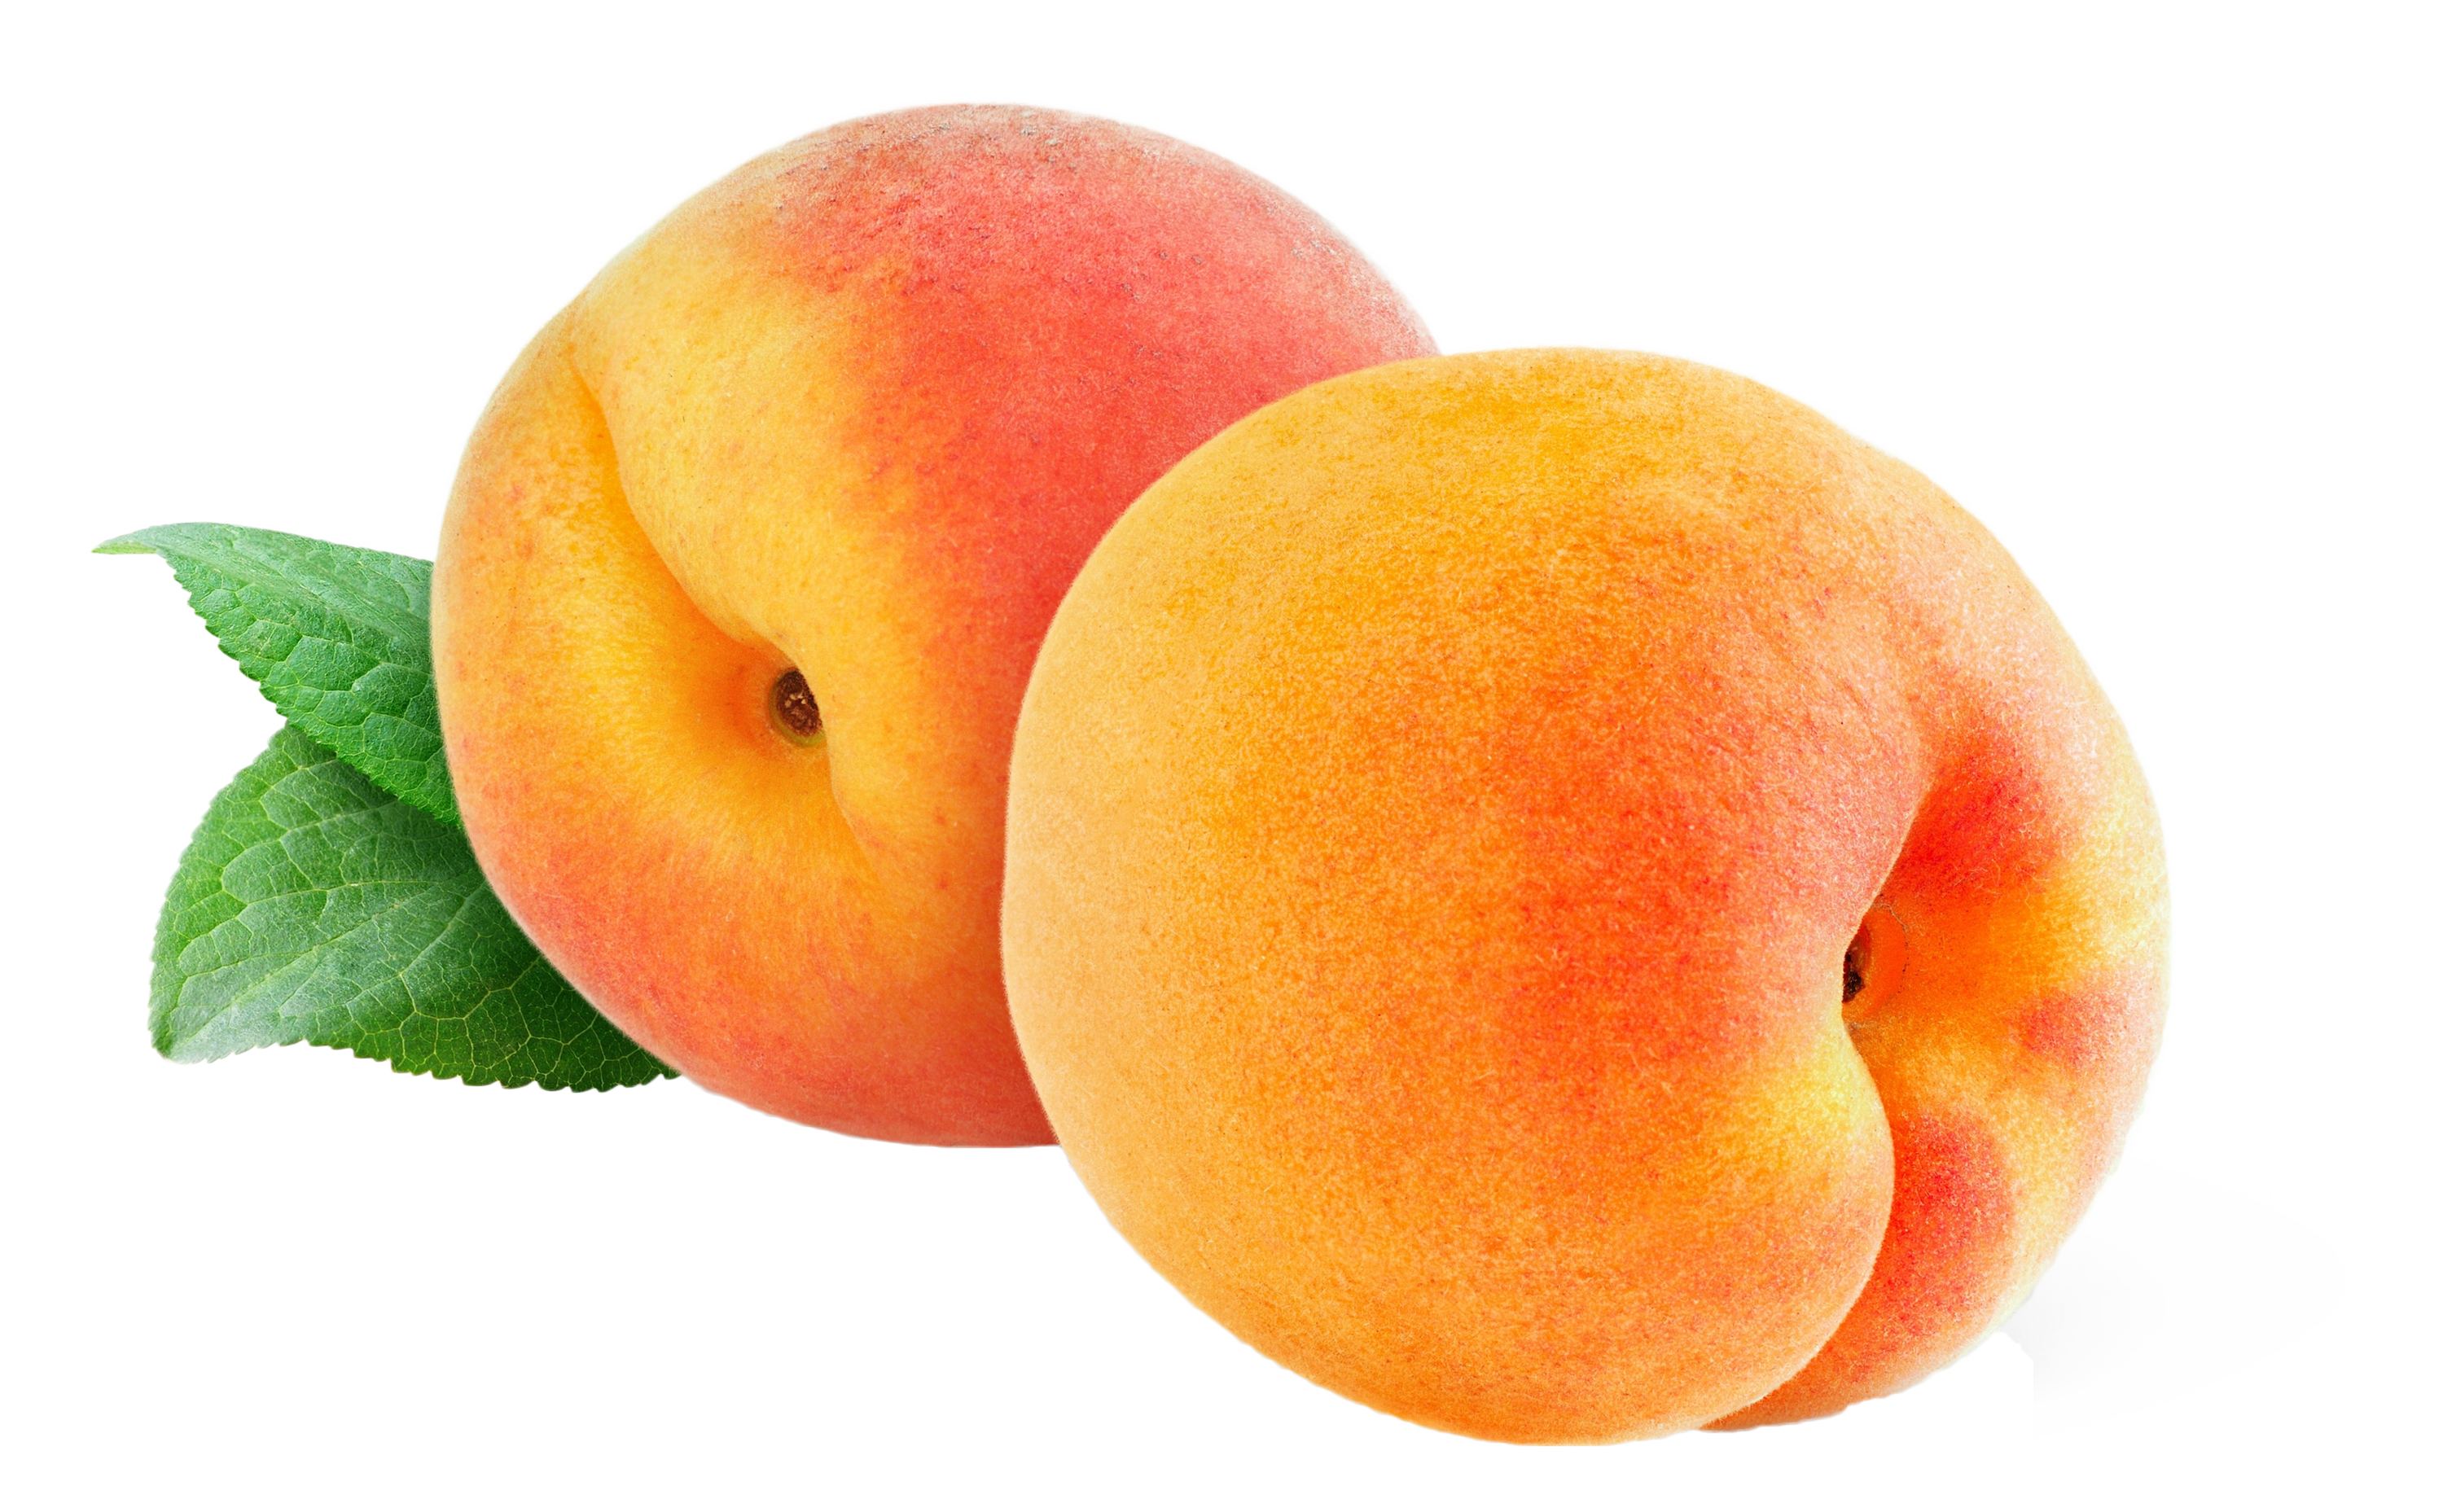 Peaches transparent. Peach png image purepng